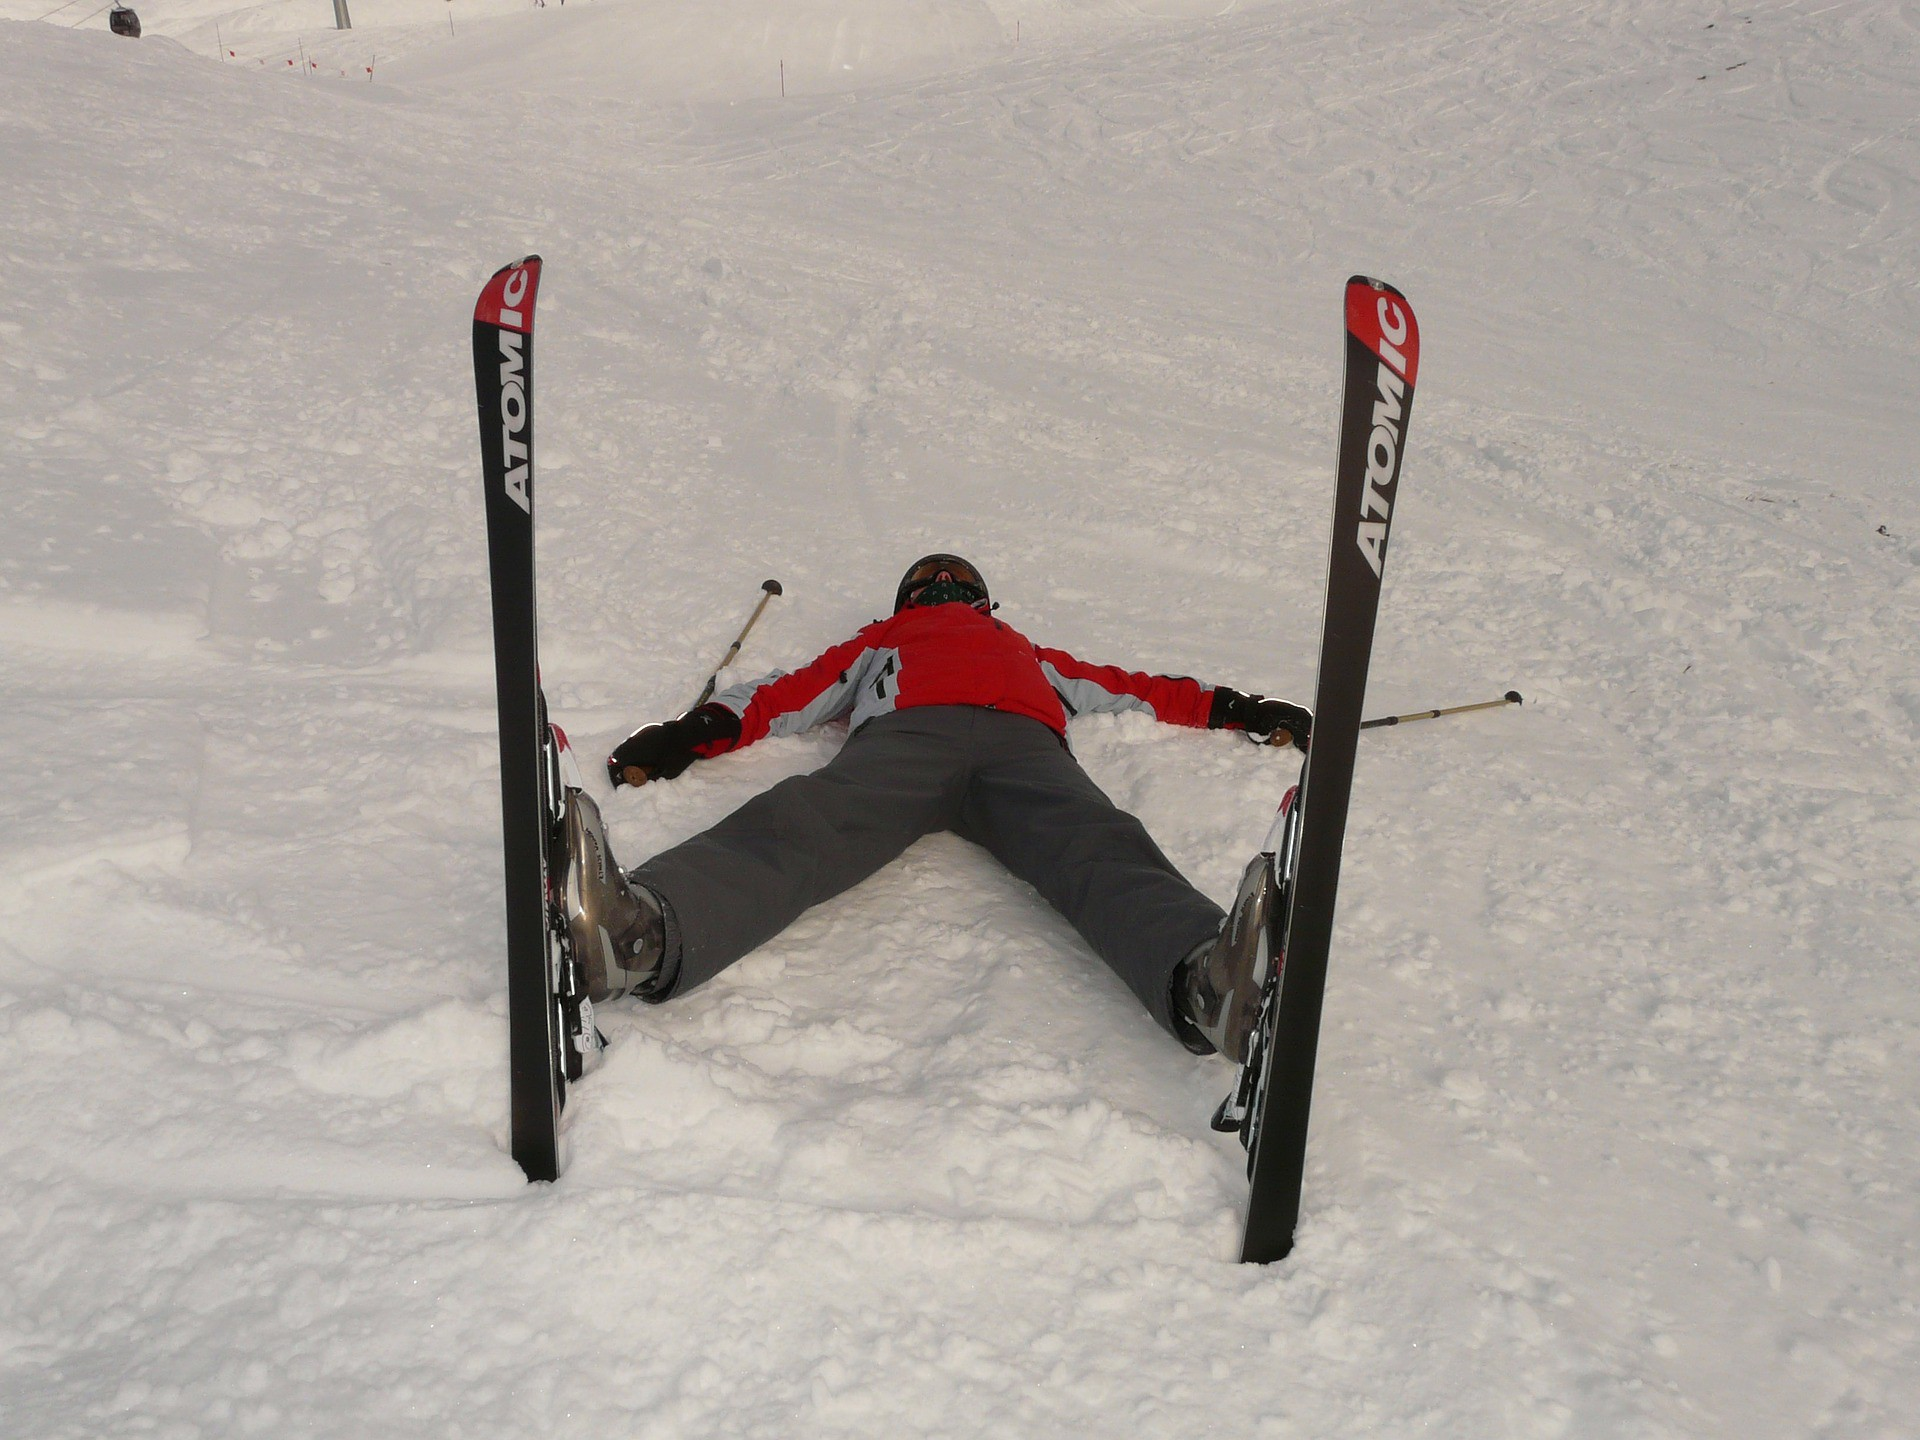 Skier laying on his back in the snow, spread-eagle and ski tips straight up